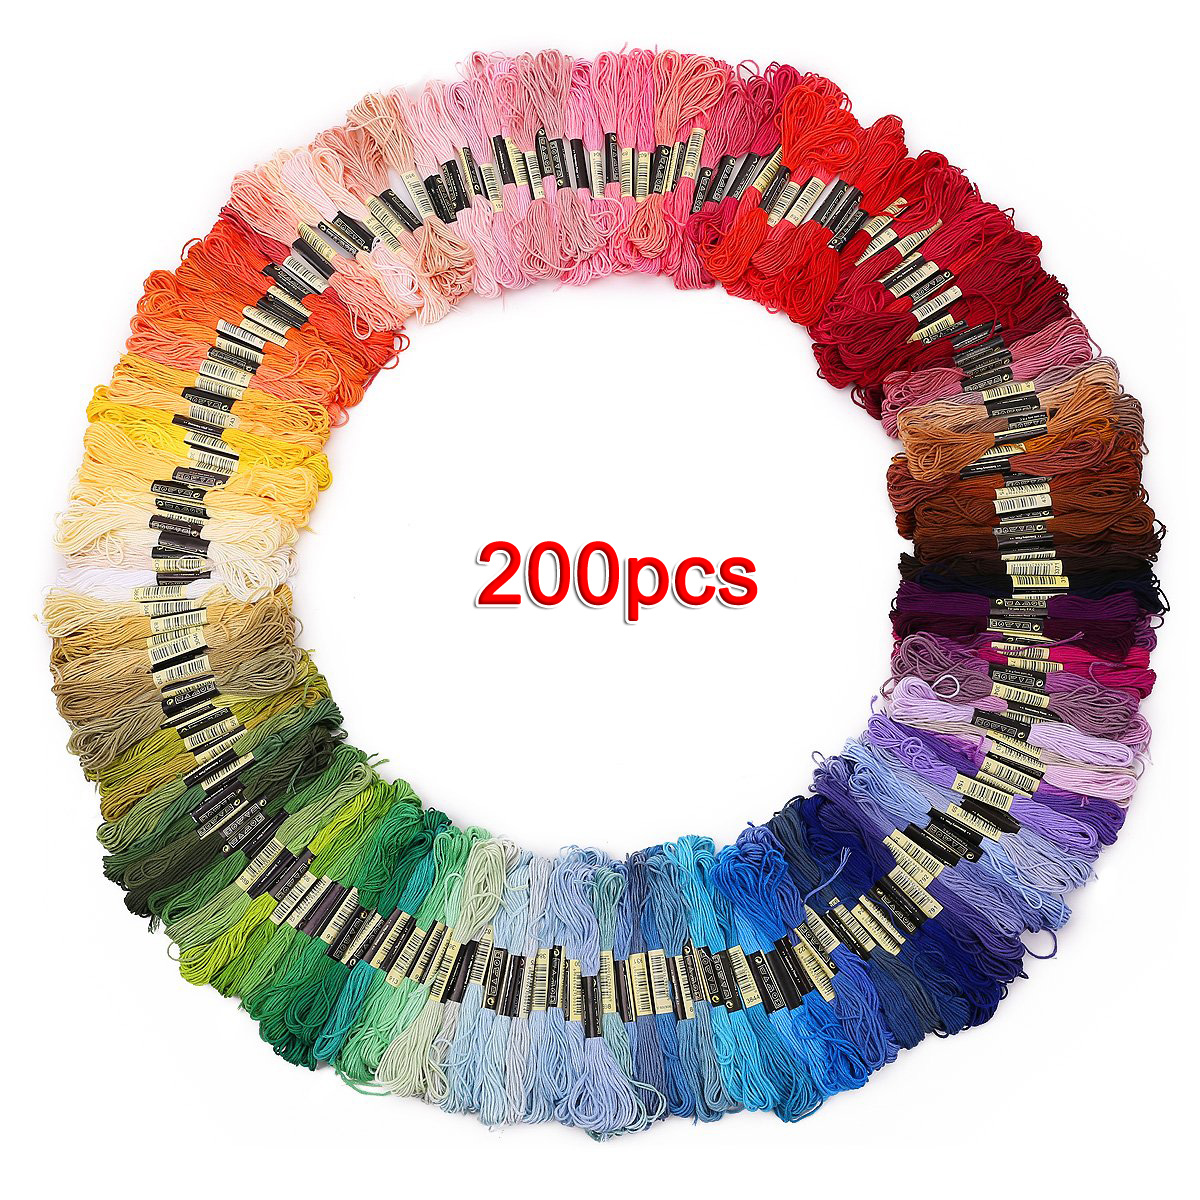 200 madejas de hilo multicolor para aguja Cruz bordado Crocheting